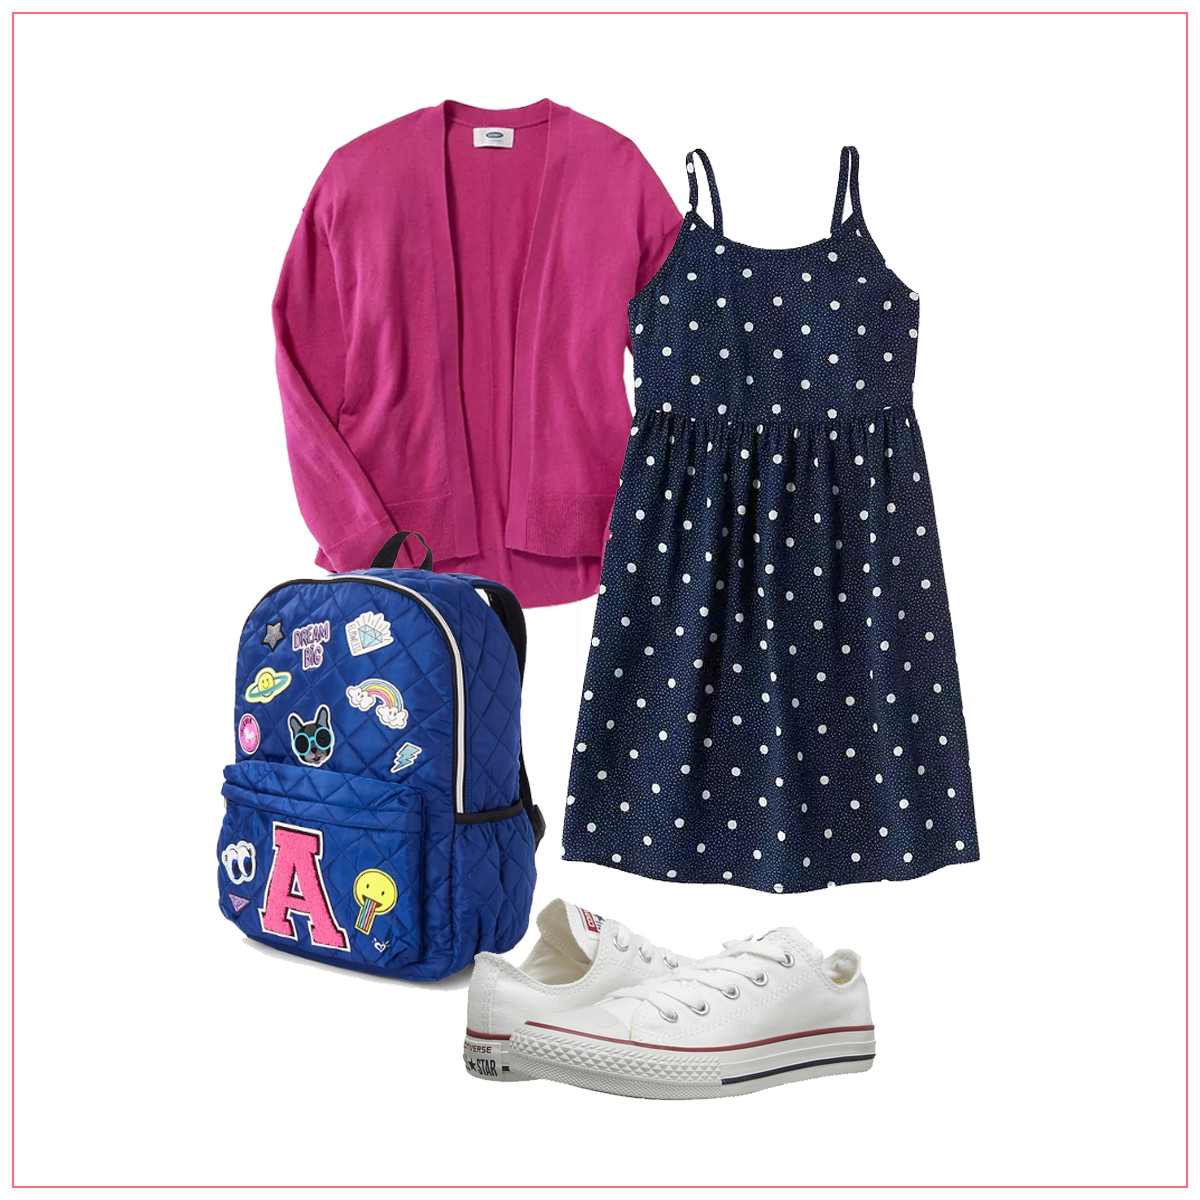 A polka dot dress, pink cardigan, and embroidered backpack